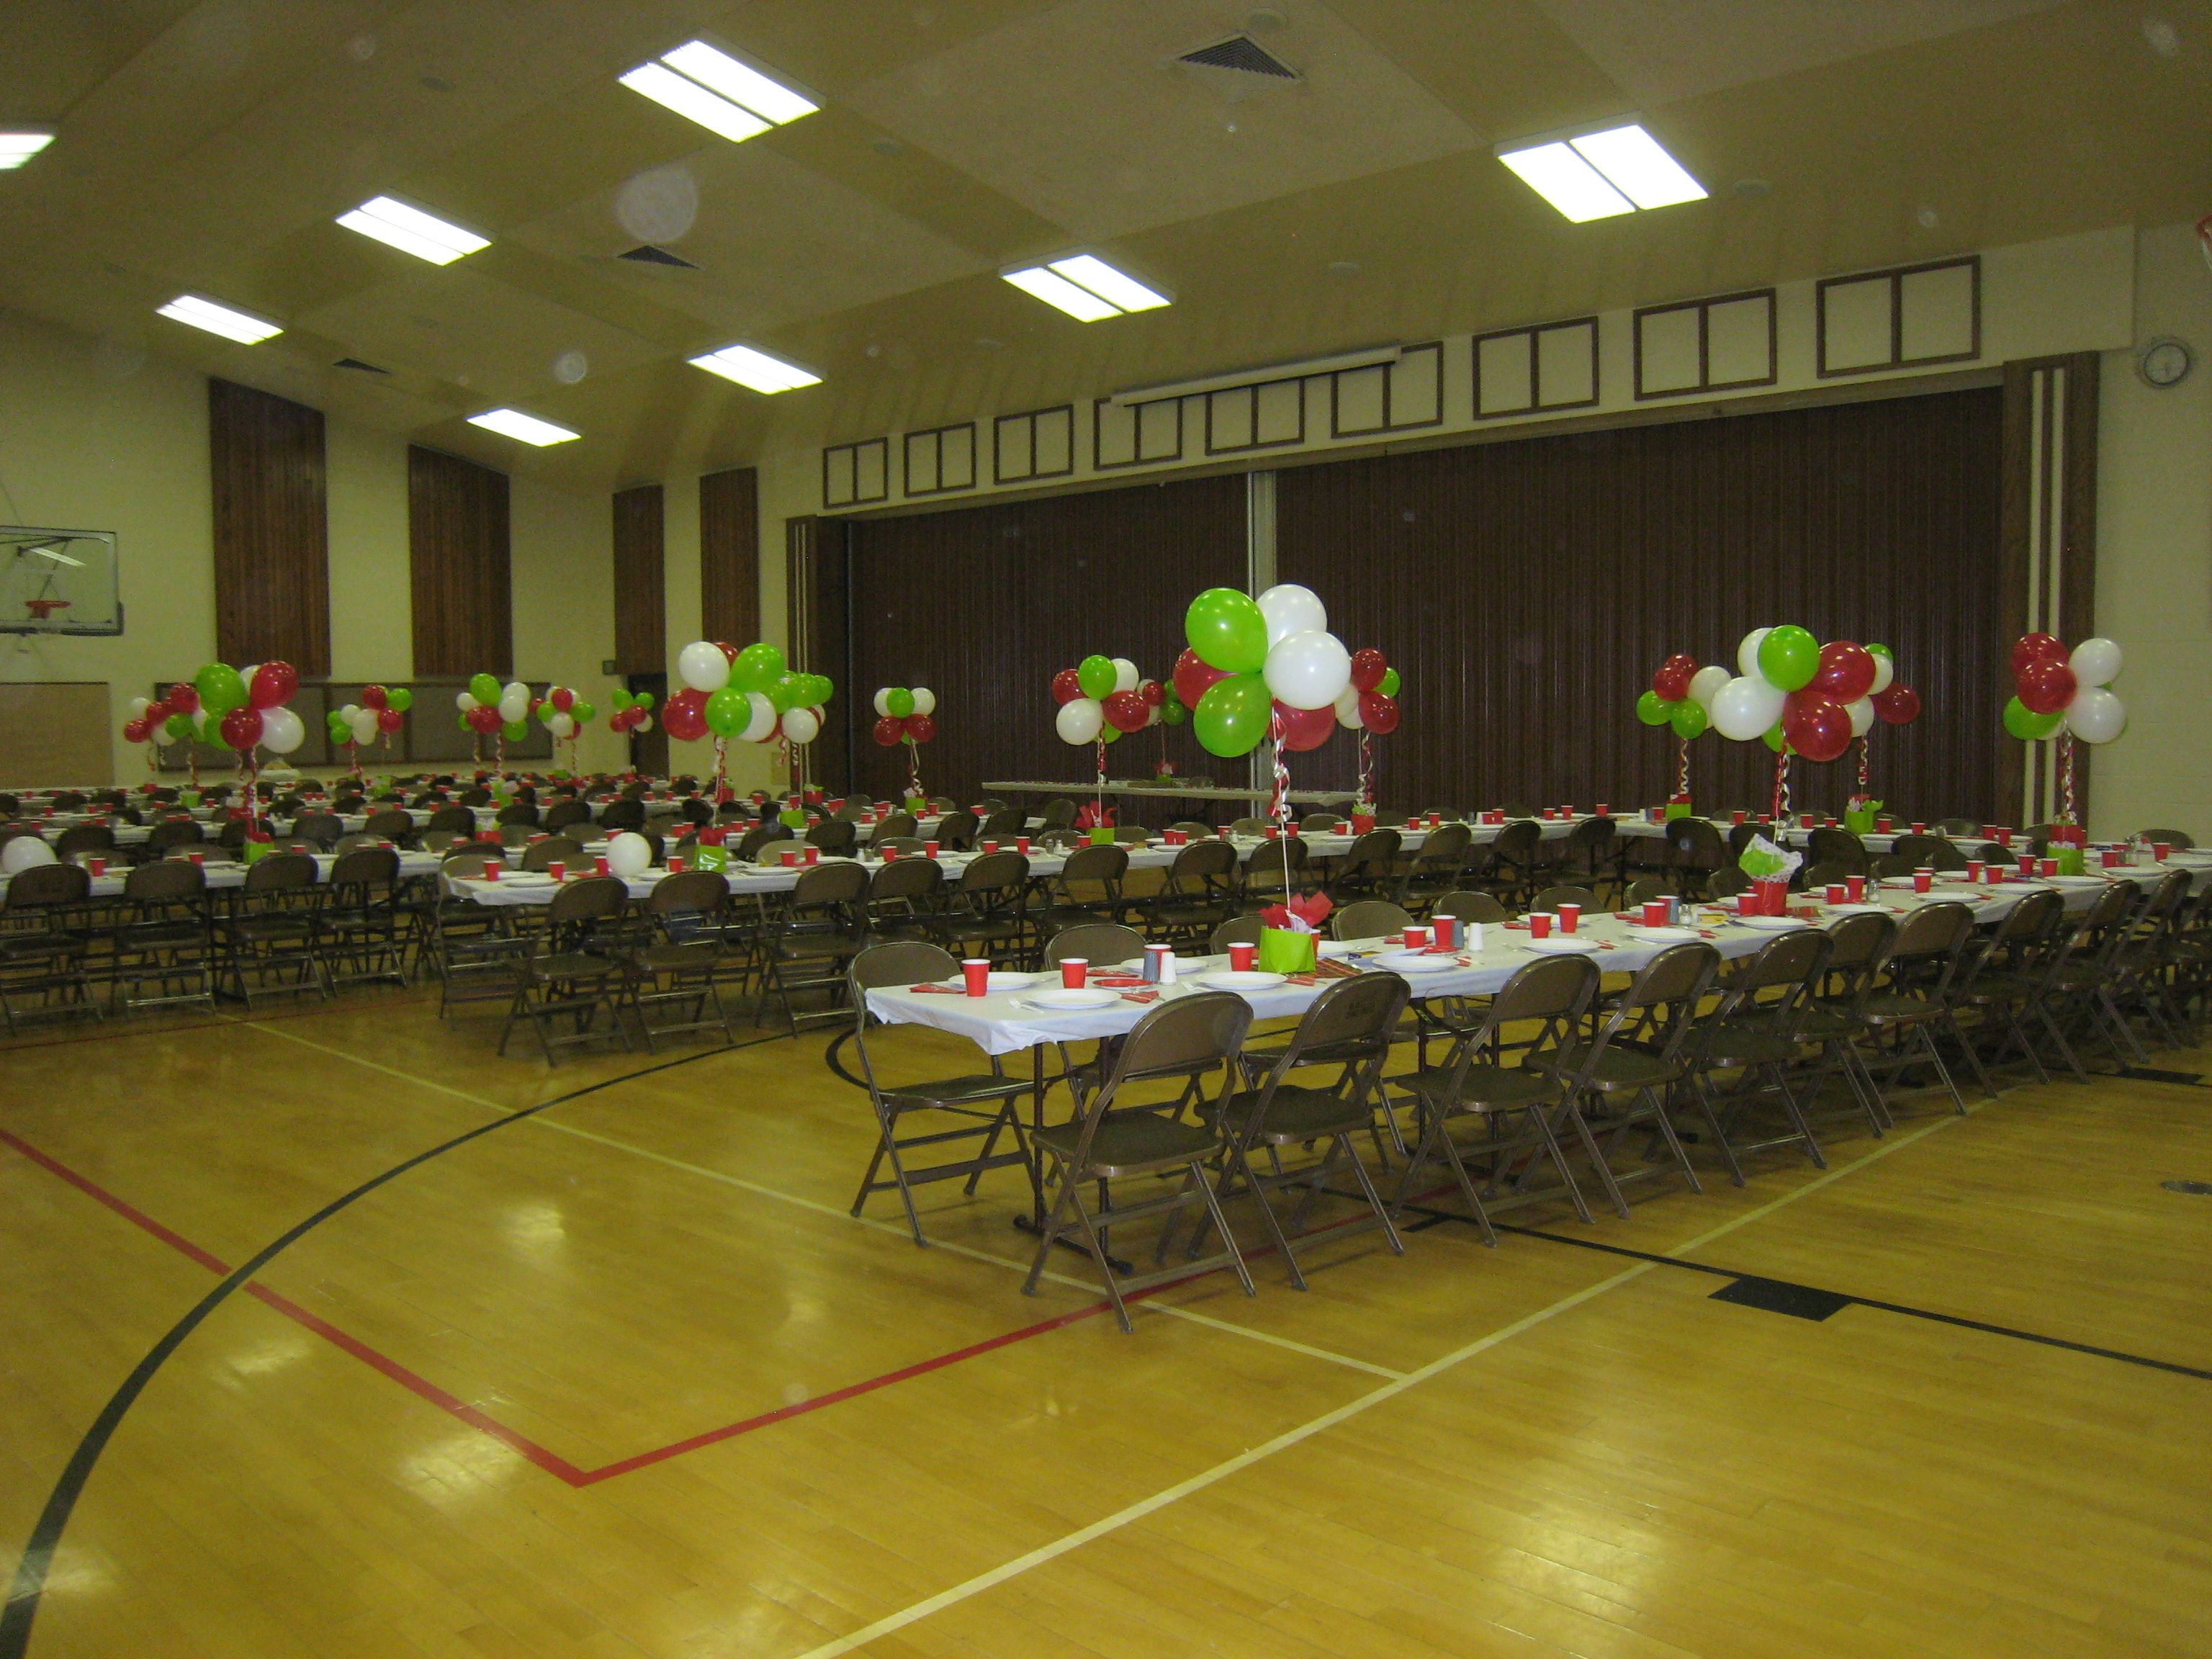 Lds Ward Christmas Party Ideas Part - 49: Church Christmas Party Decorations, Turned Out So Cute And Fun!